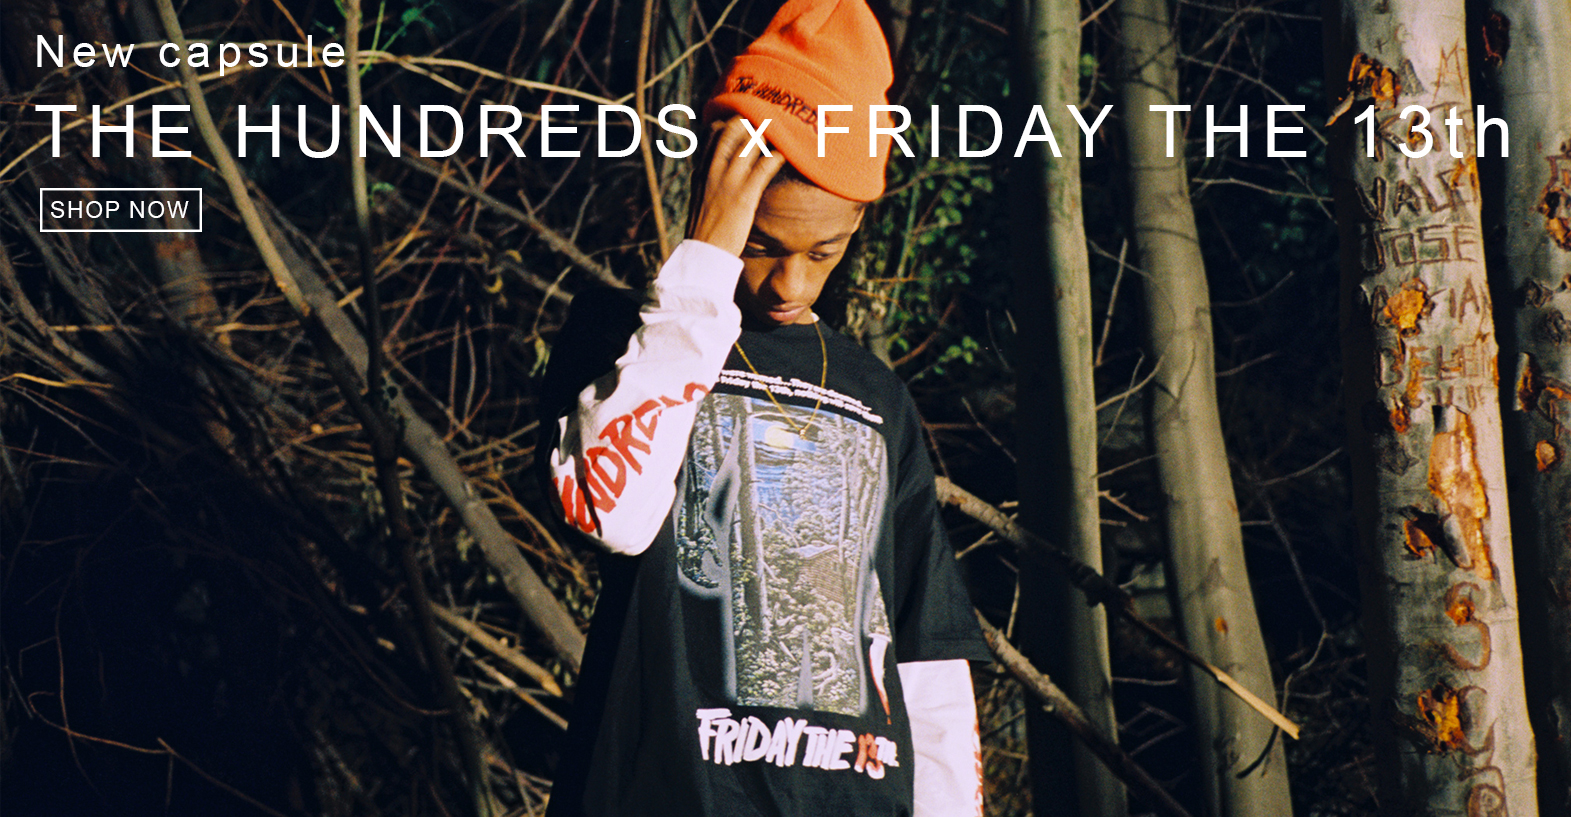 HUNDREDS X FRIDAY THE 13TH SHOP NOW